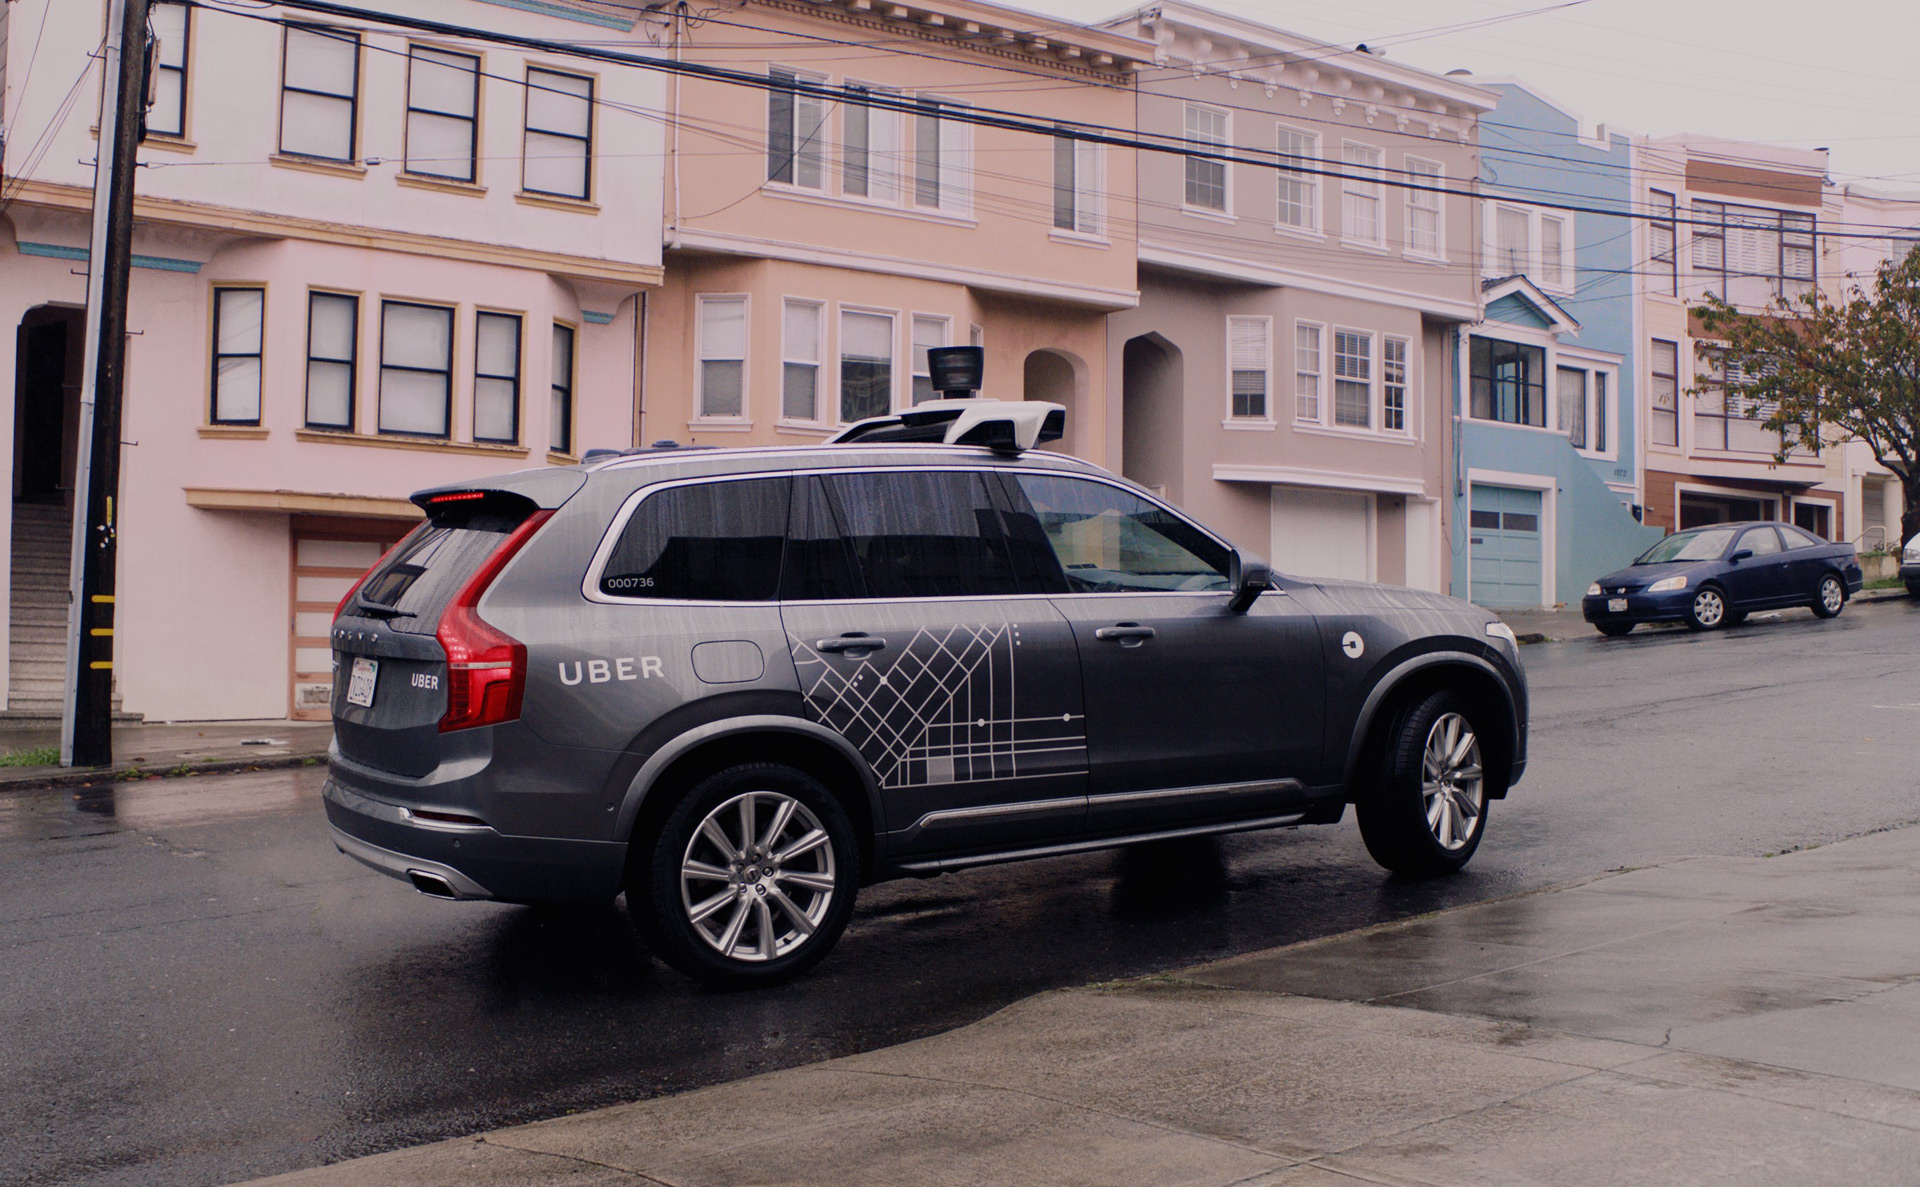 uber self-driving car prototypes back on the road 9 months after